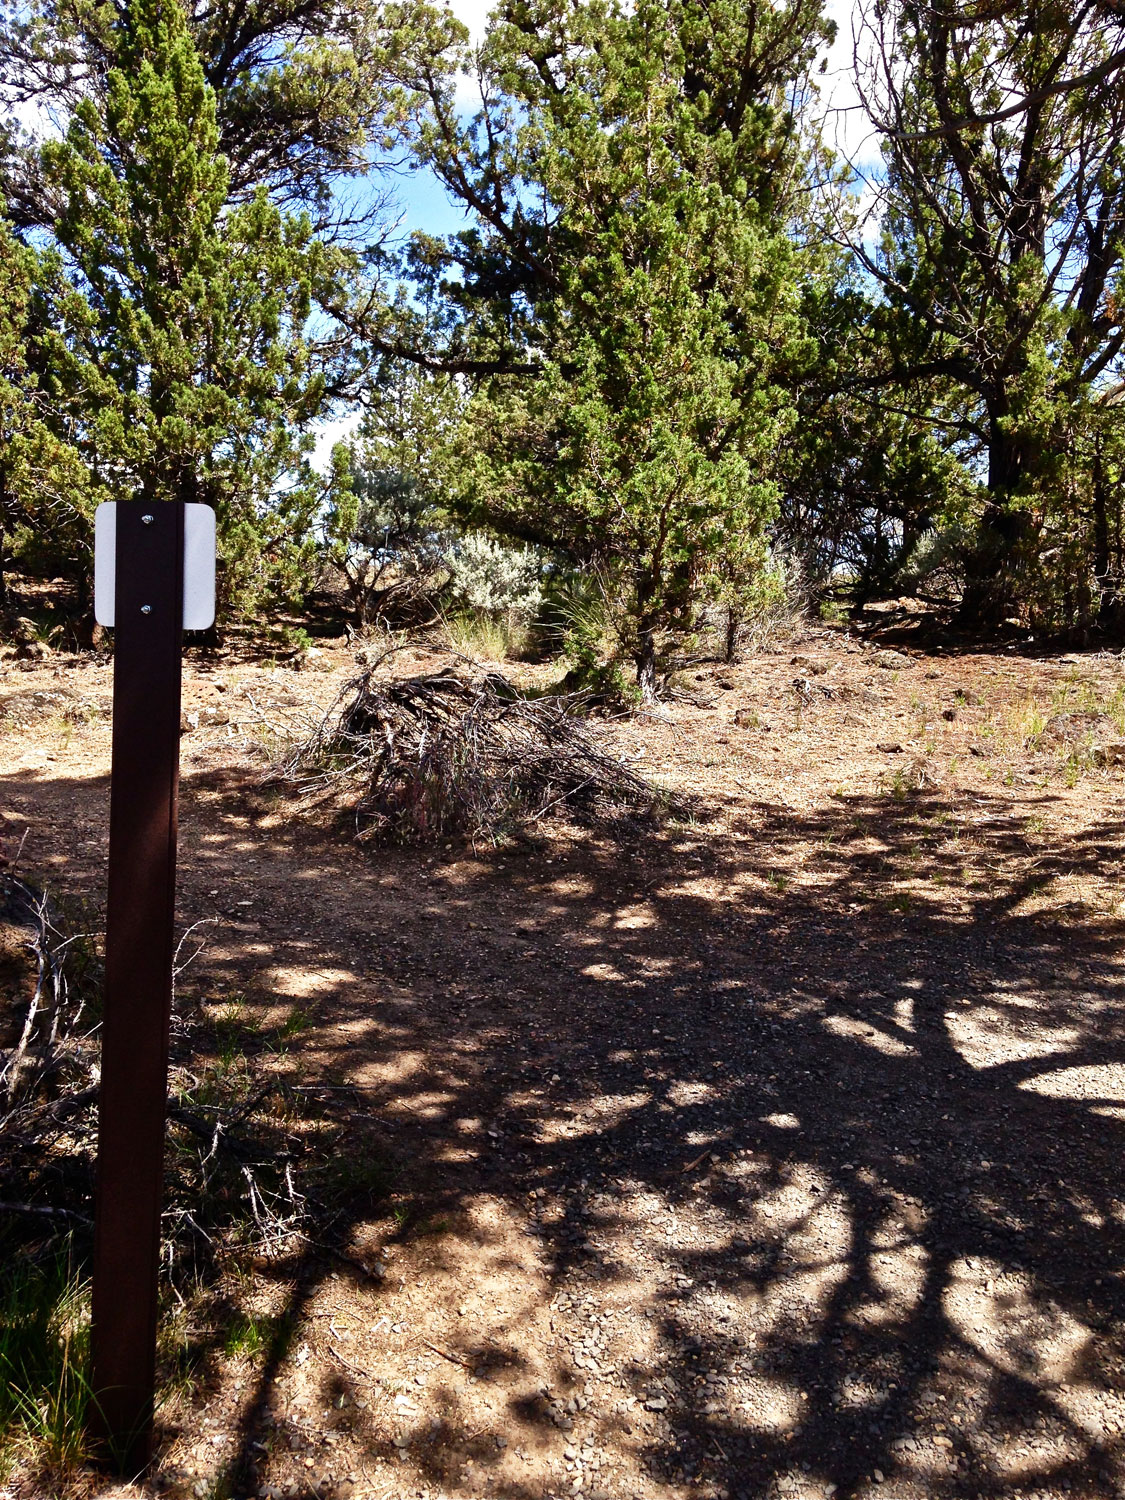 The intersection of the Rope-de-Dope Trail with the Rim Rock Trail. Go right to the campground or left back to the parking area at Smith Rock State Park.